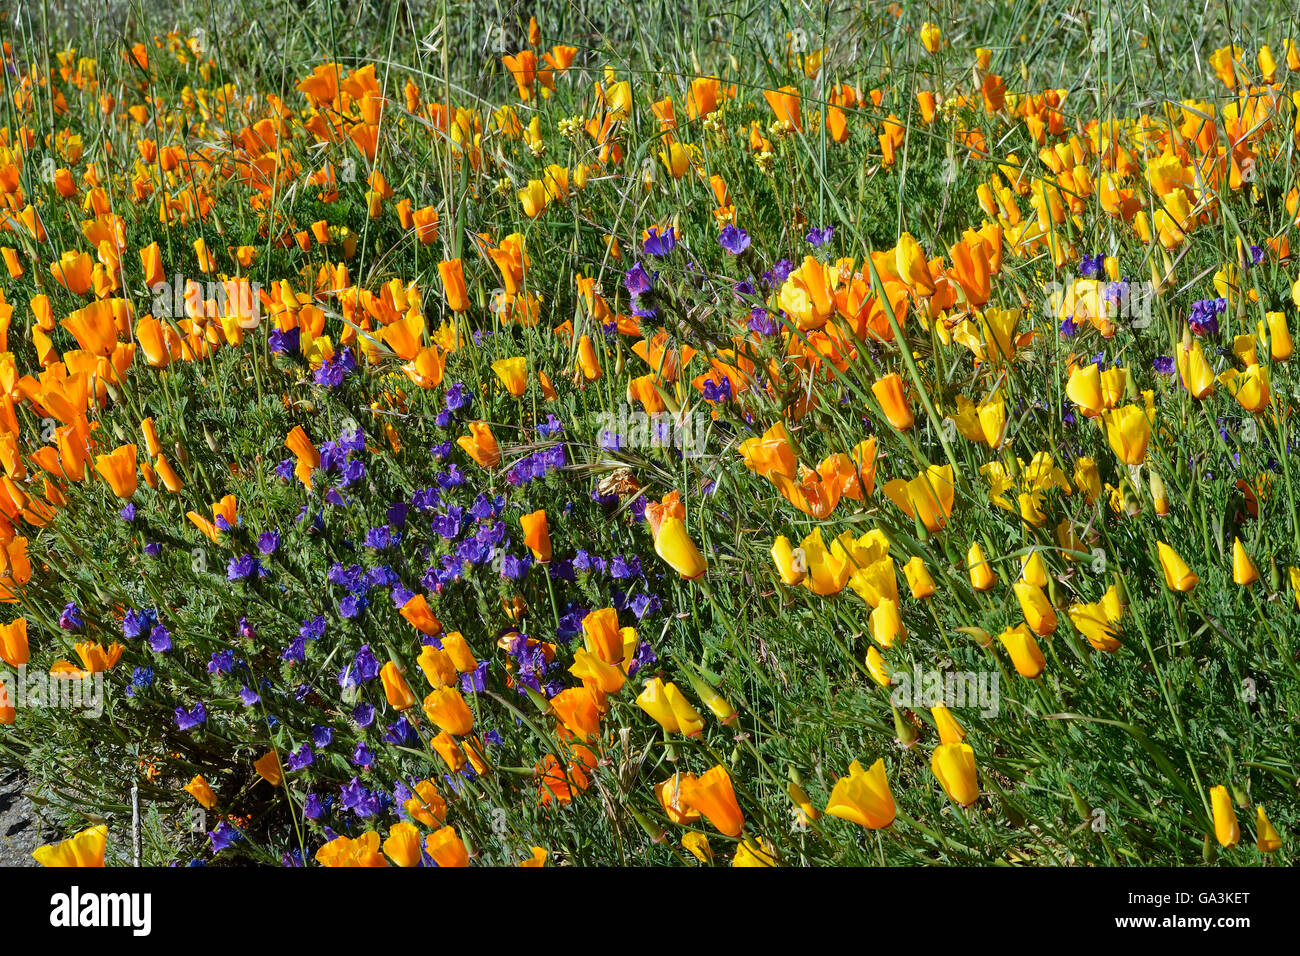 Poppy flower field at night royalty free stock photography image - Search Stock Photos By Tags